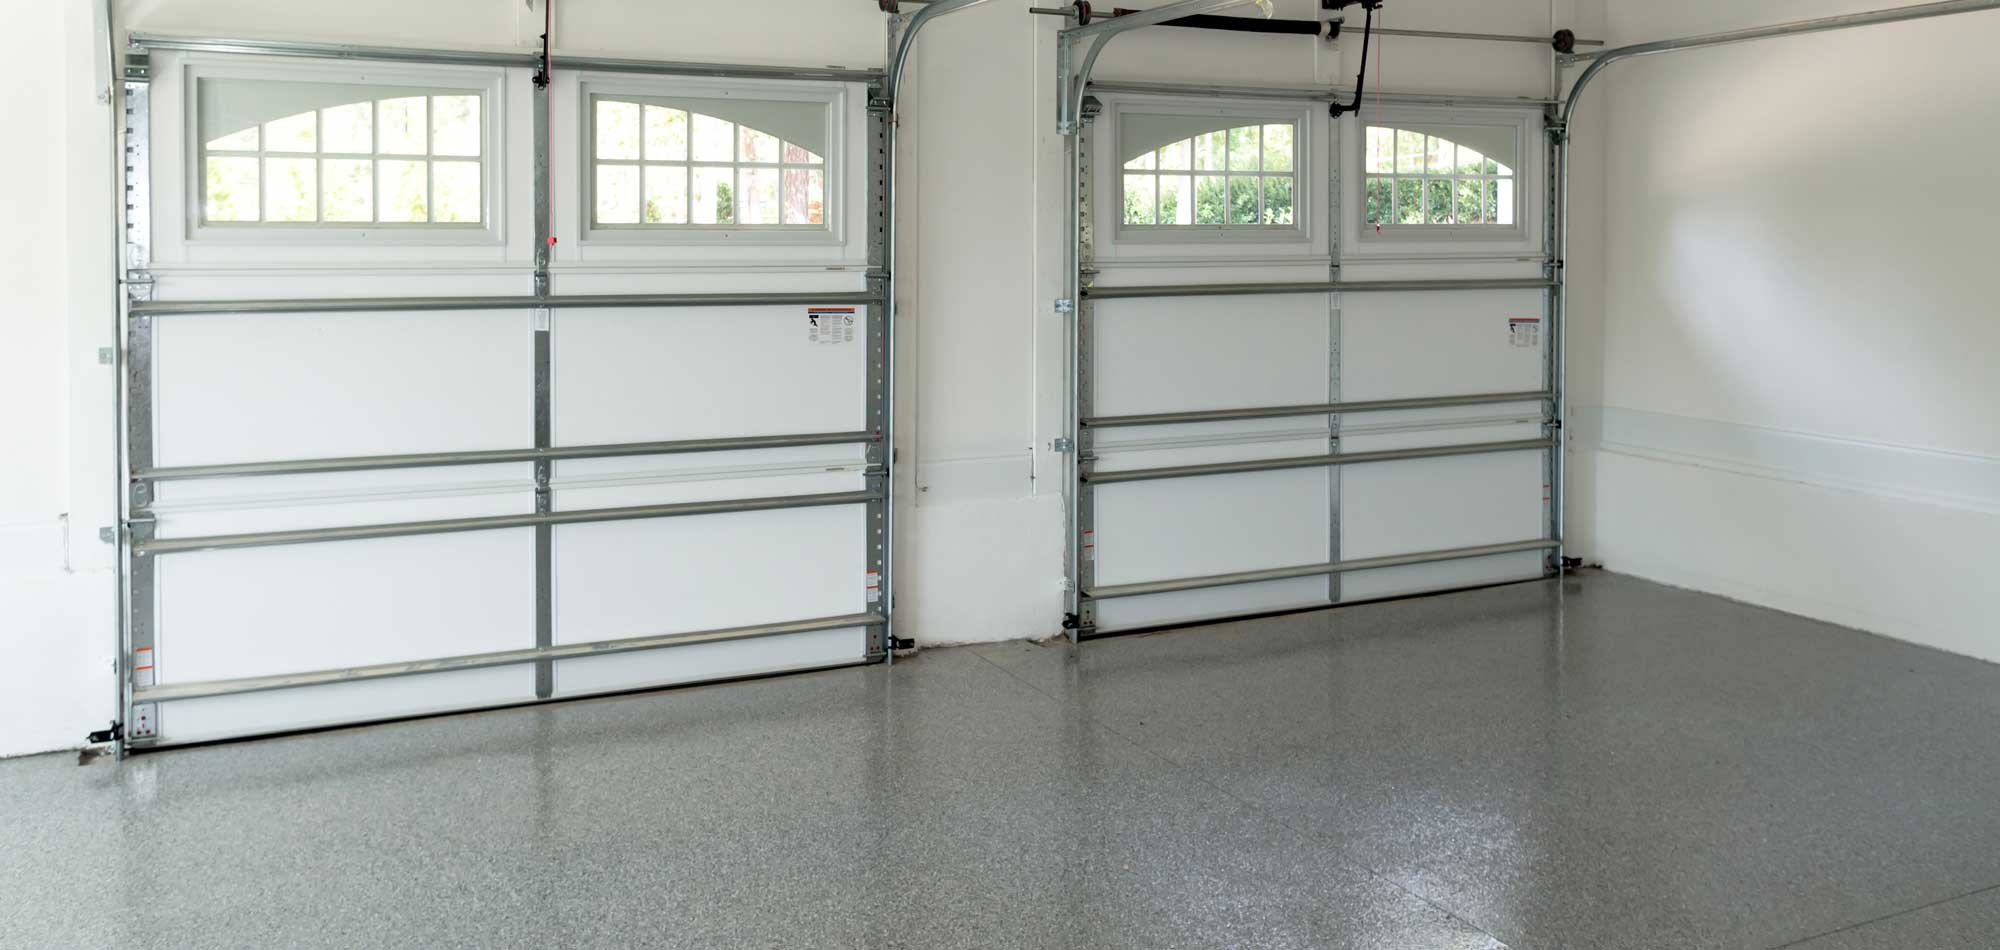 How Much Does Garage Floor Epoxy Cost Inch Calculator